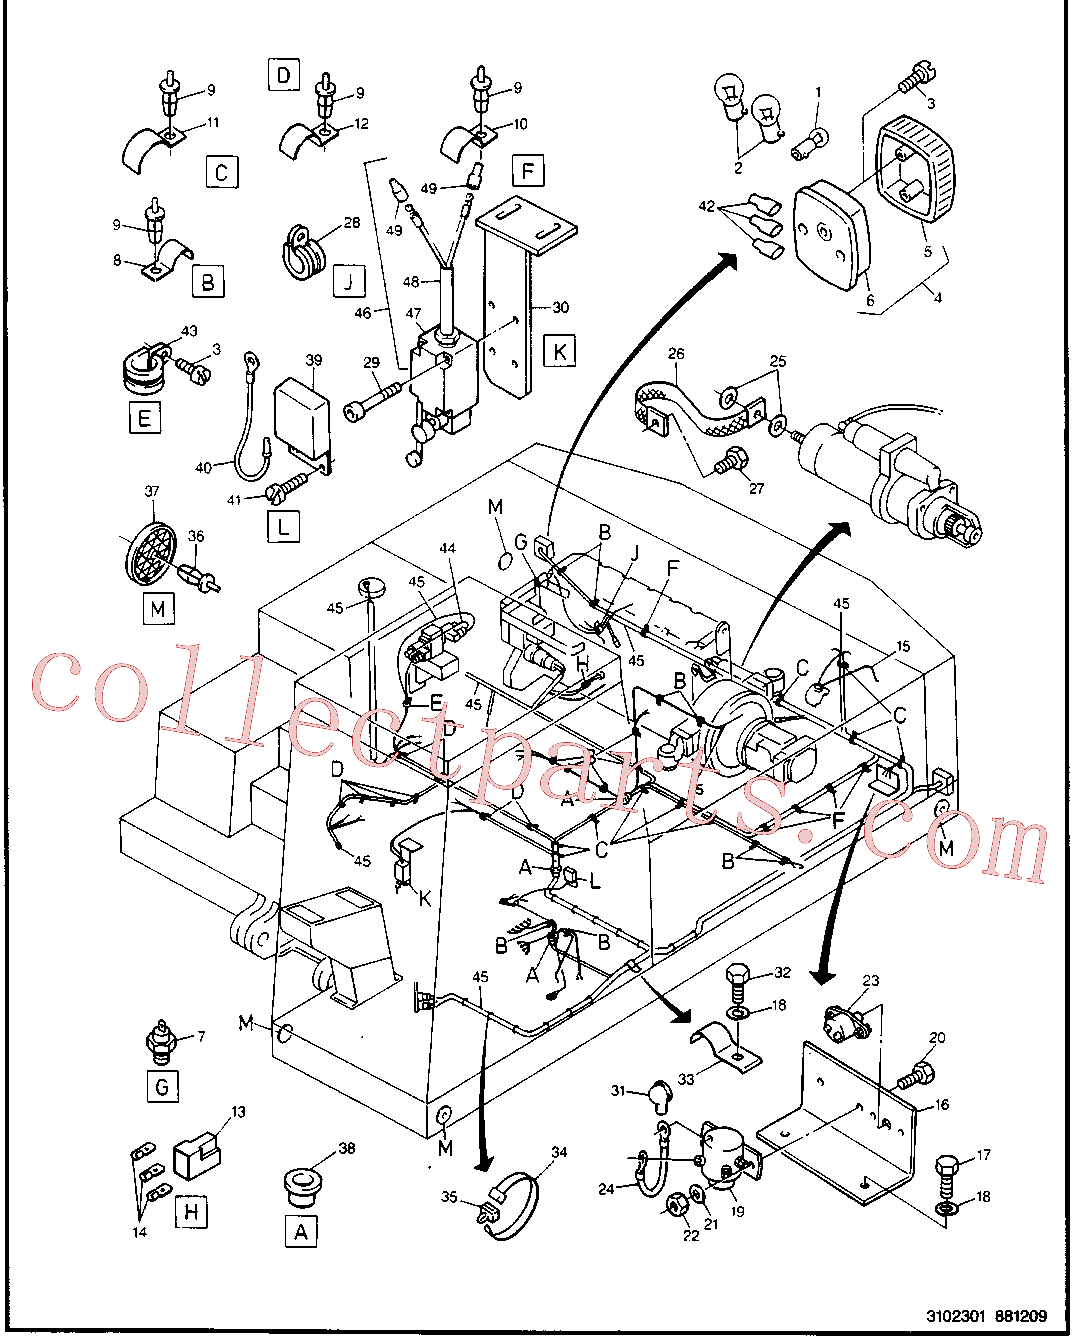 CAT 5W-9297 for 224B Excavator(EXC) electrical system 8U-0932 Assembly